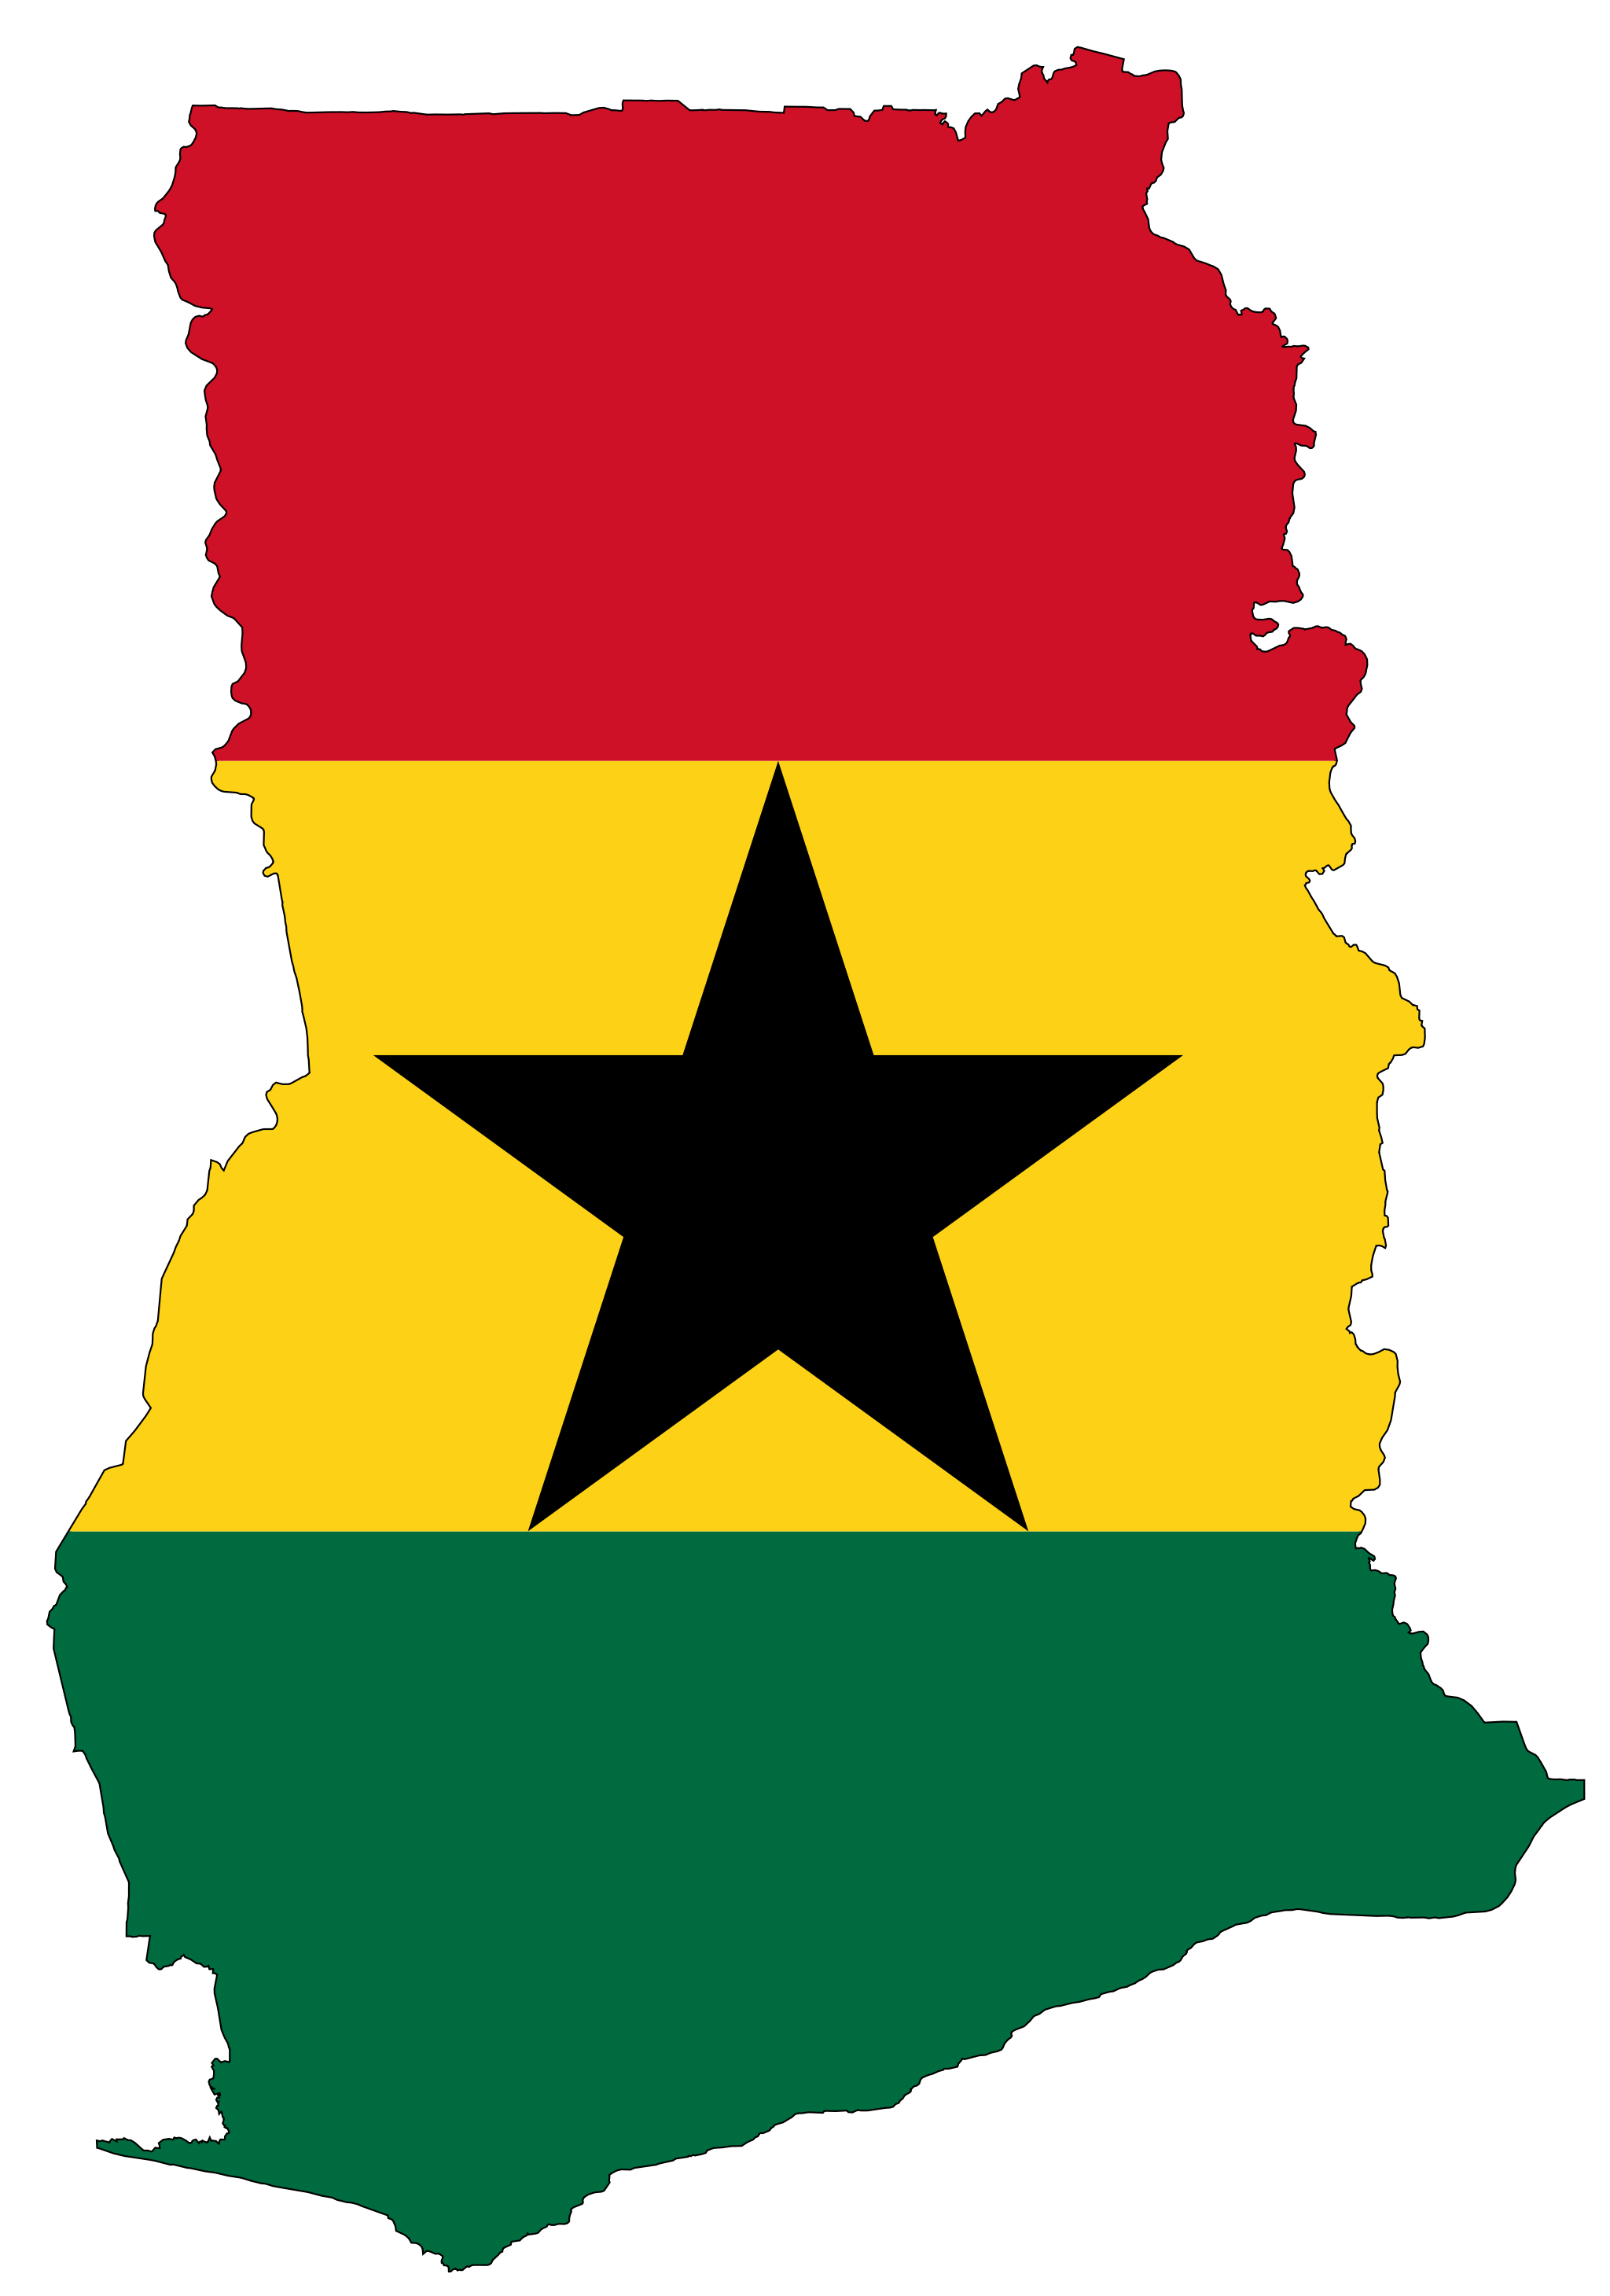 Ghana In Africa Map.3 2 Ghana Is 57 Years Old It Was Founded On March 6 1957